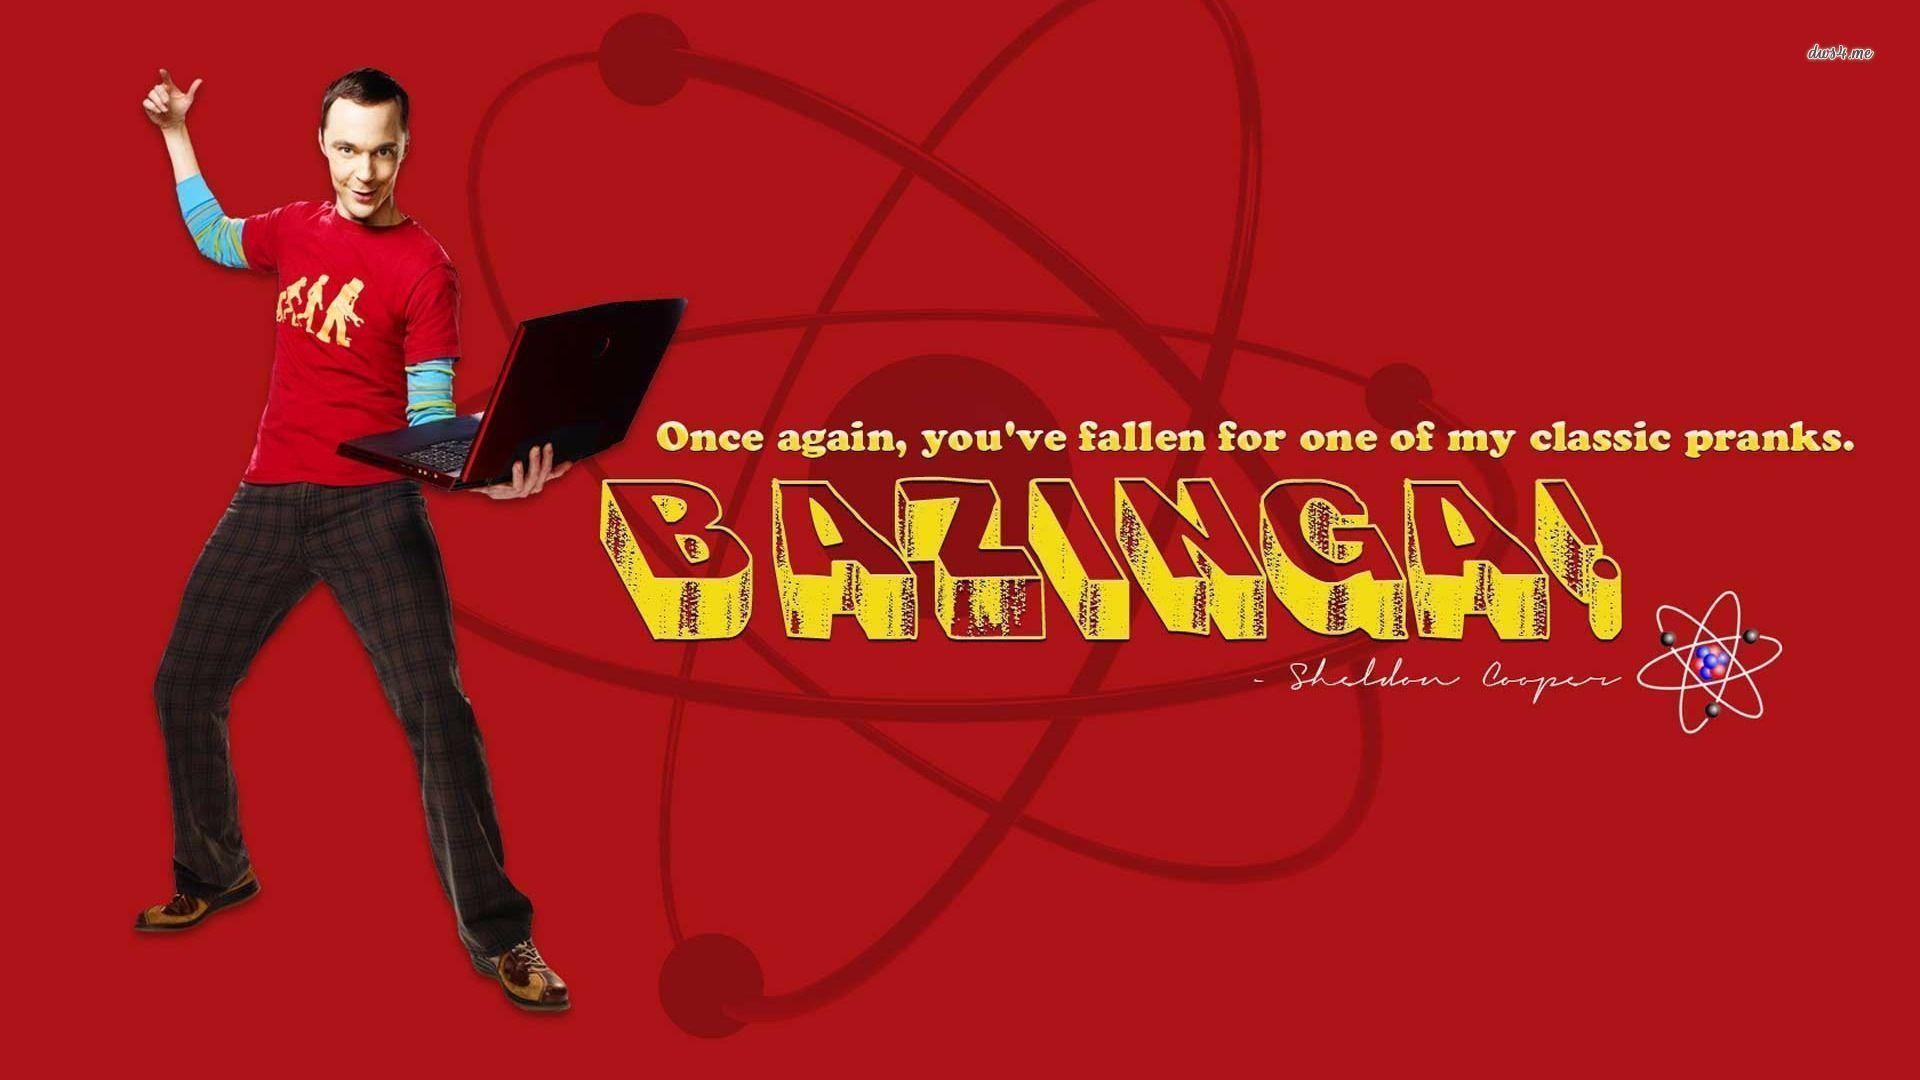 Bazinga Computer Wallpapers, Desktop Backgrounds 1920x1080 Id: 431309